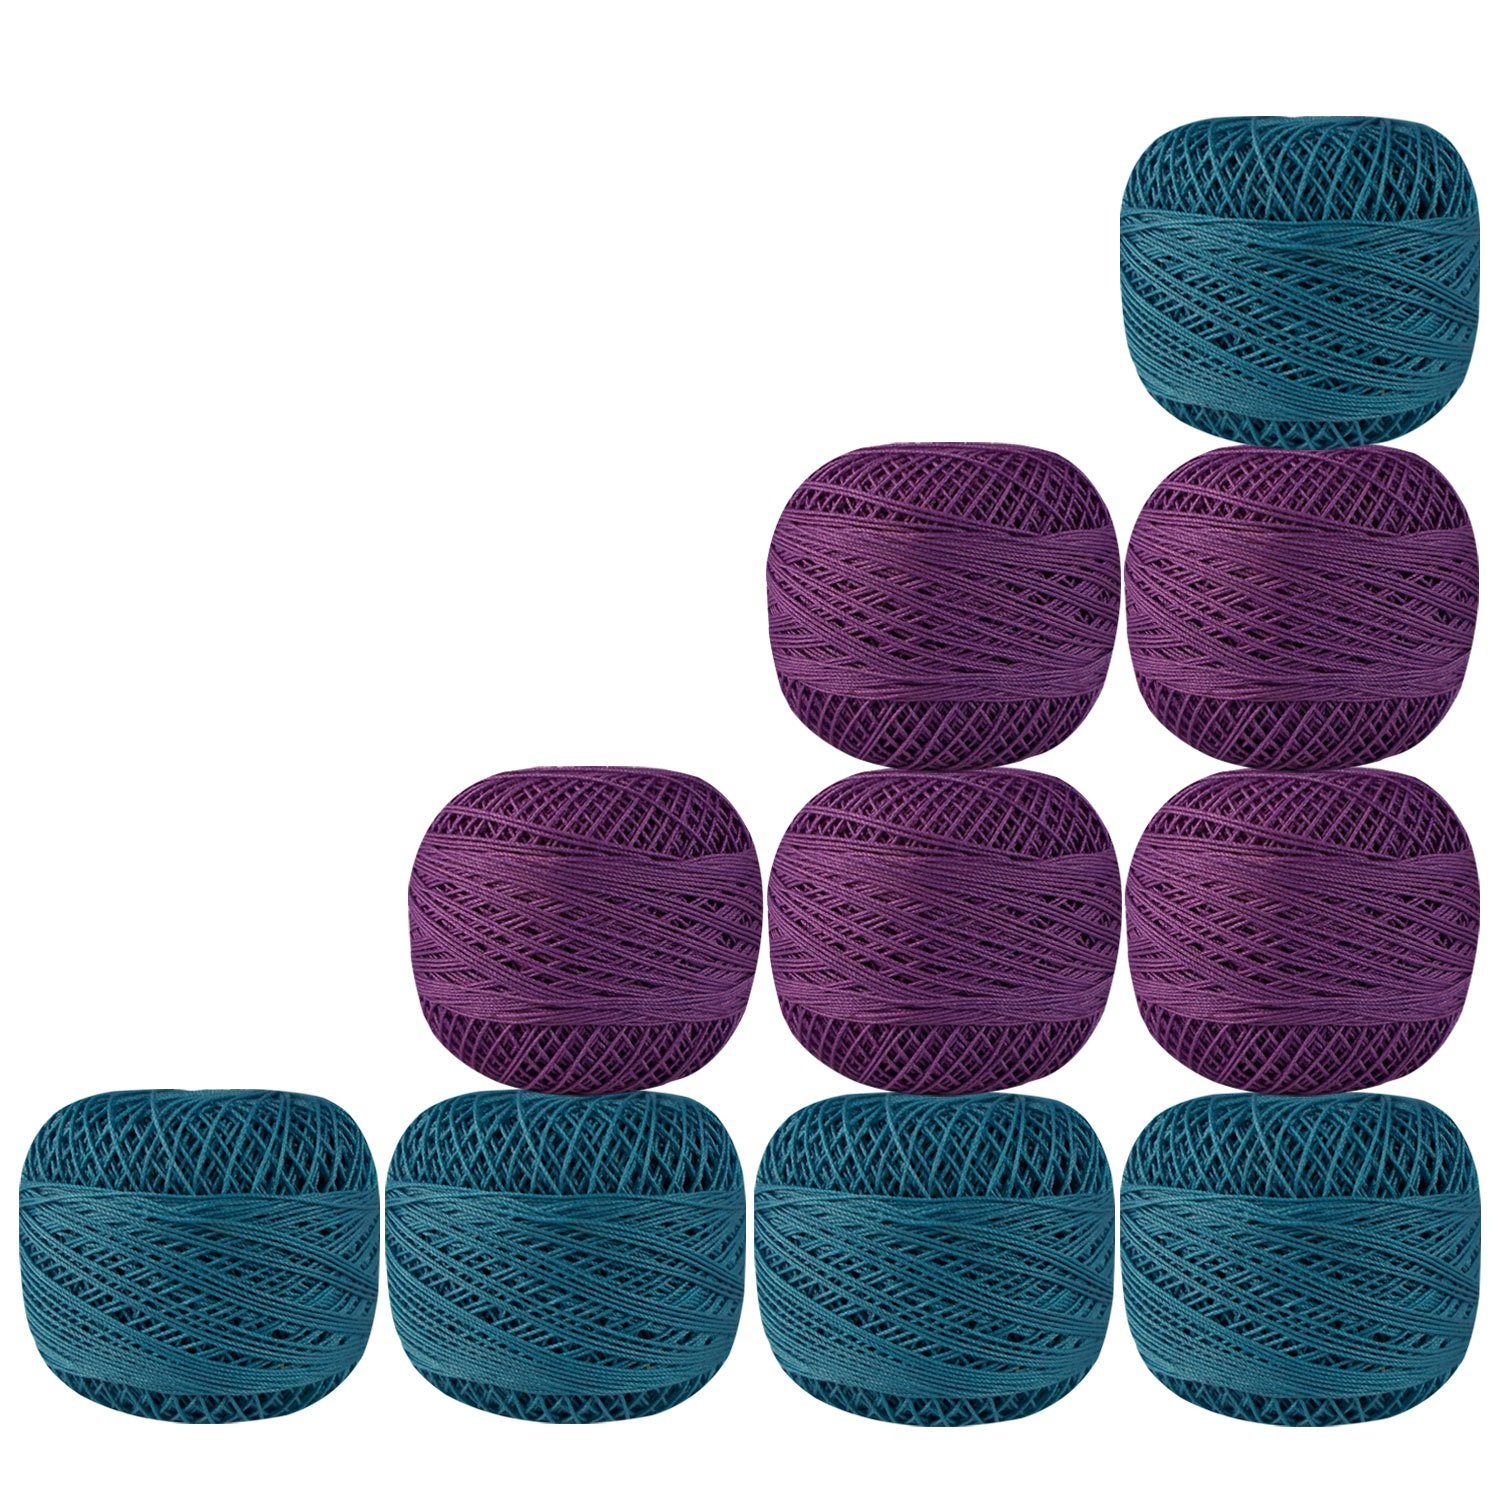 Lot of 10 Pcs Purple and Turquoise Blue Cotton Crochet Thread Yarn Tatting Doilies Skeins Lacey Craft